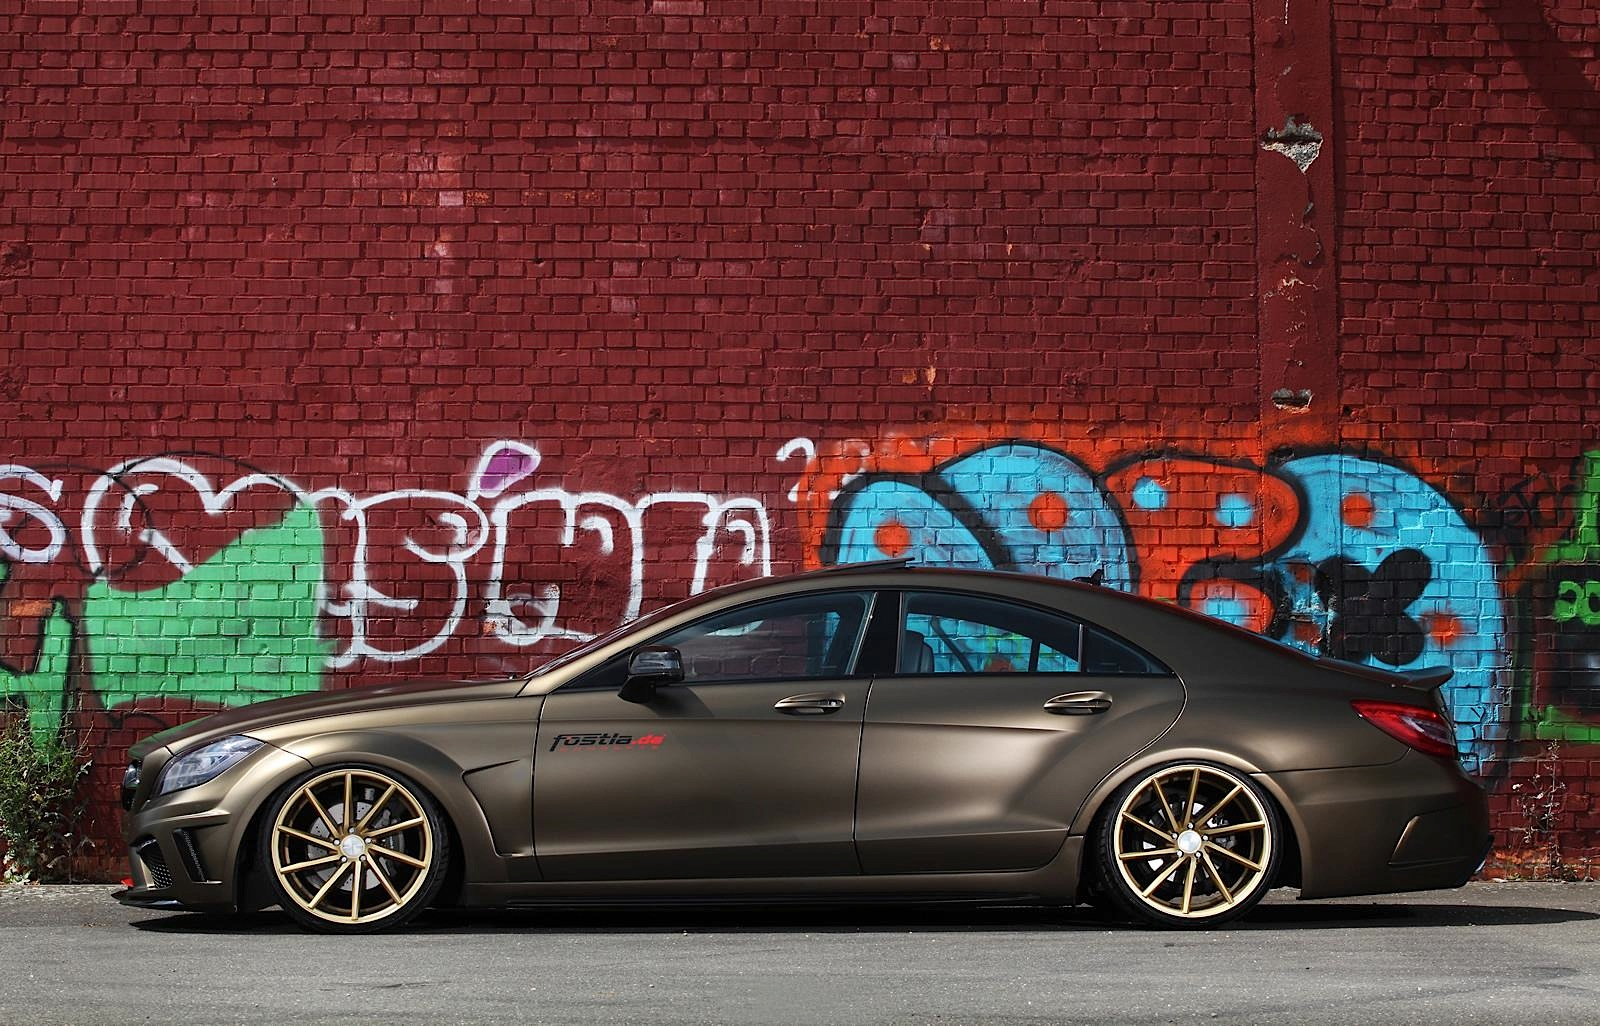 Used 2016 Nissan Maxima >> Stanced Mercedes-Benz CLS by Fostla is a Bit Too Much - autoevolution